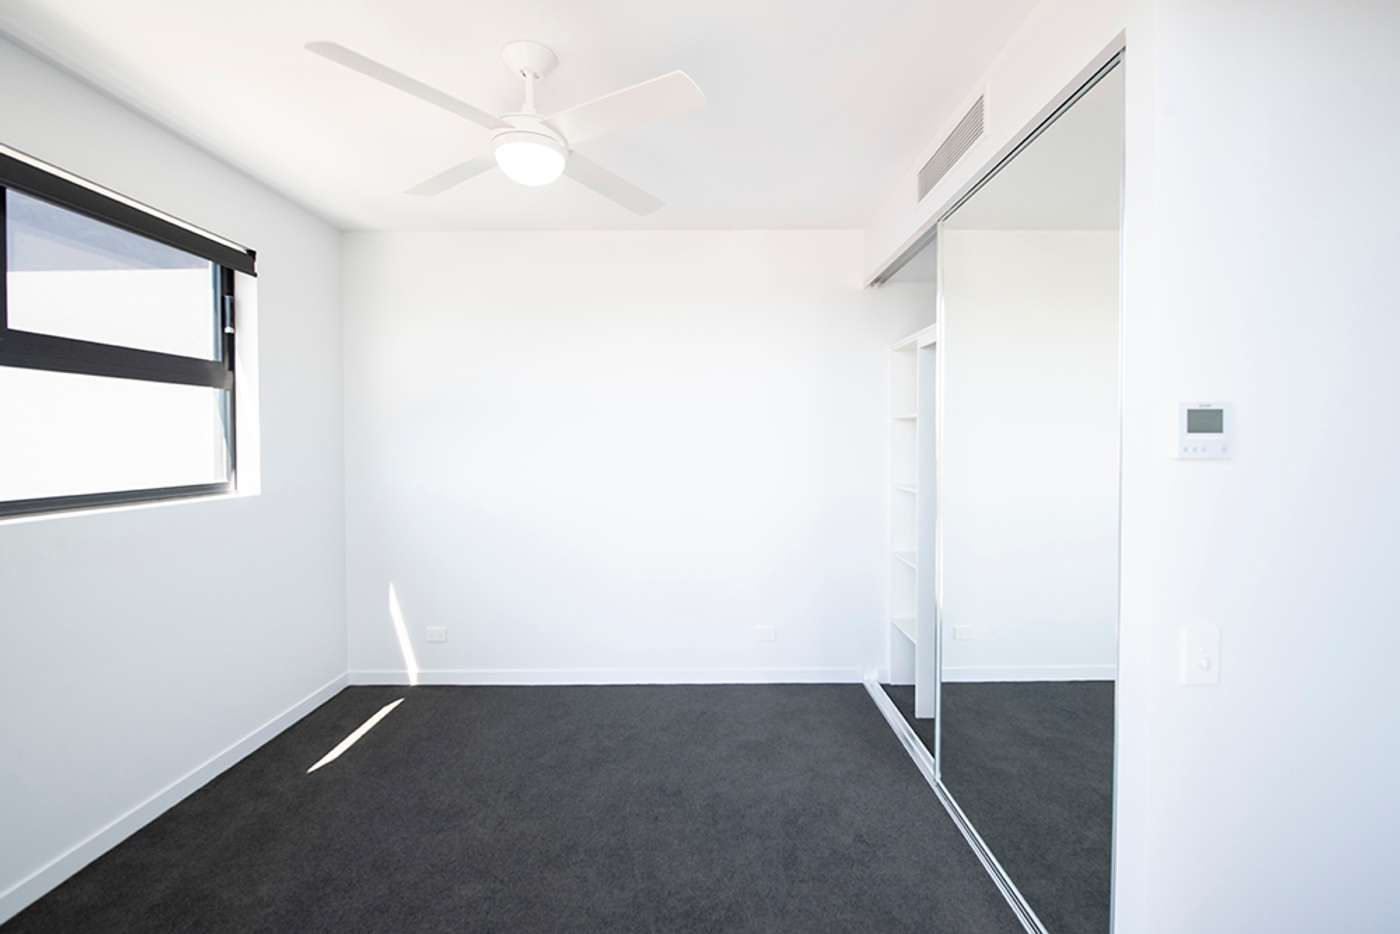 Seventh view of Homely apartment listing, 202/35-39 Lambert Rd, Indooroopilly QLD 4068